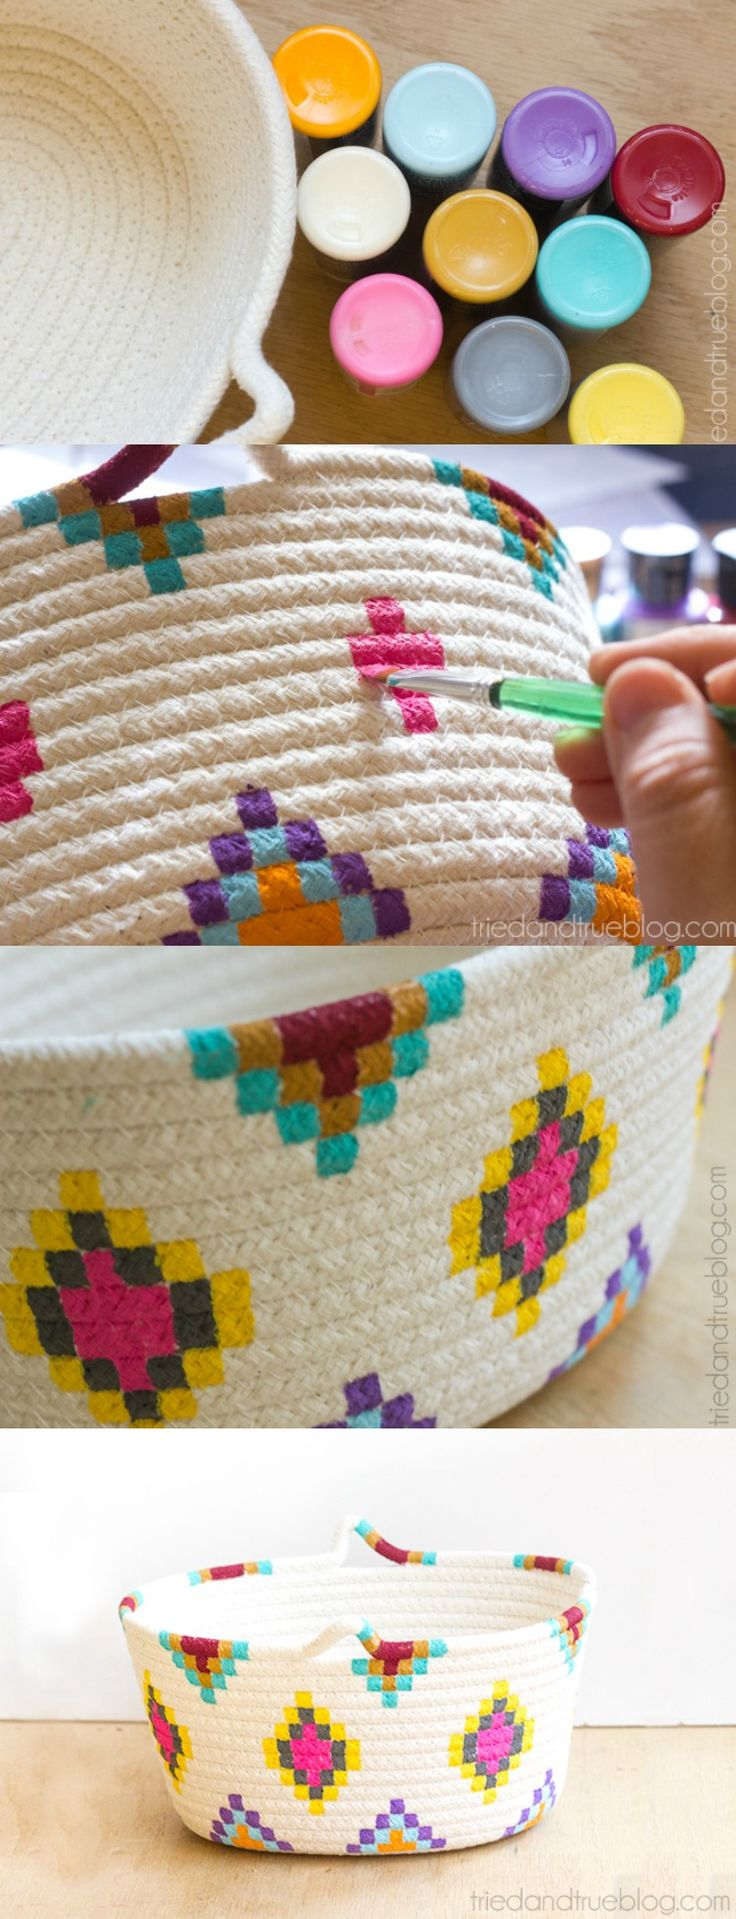 Pretty! This Kilim-Inspired painted basket tutorial is an easy way to try out a fun new color palette quickly and inexpensively.